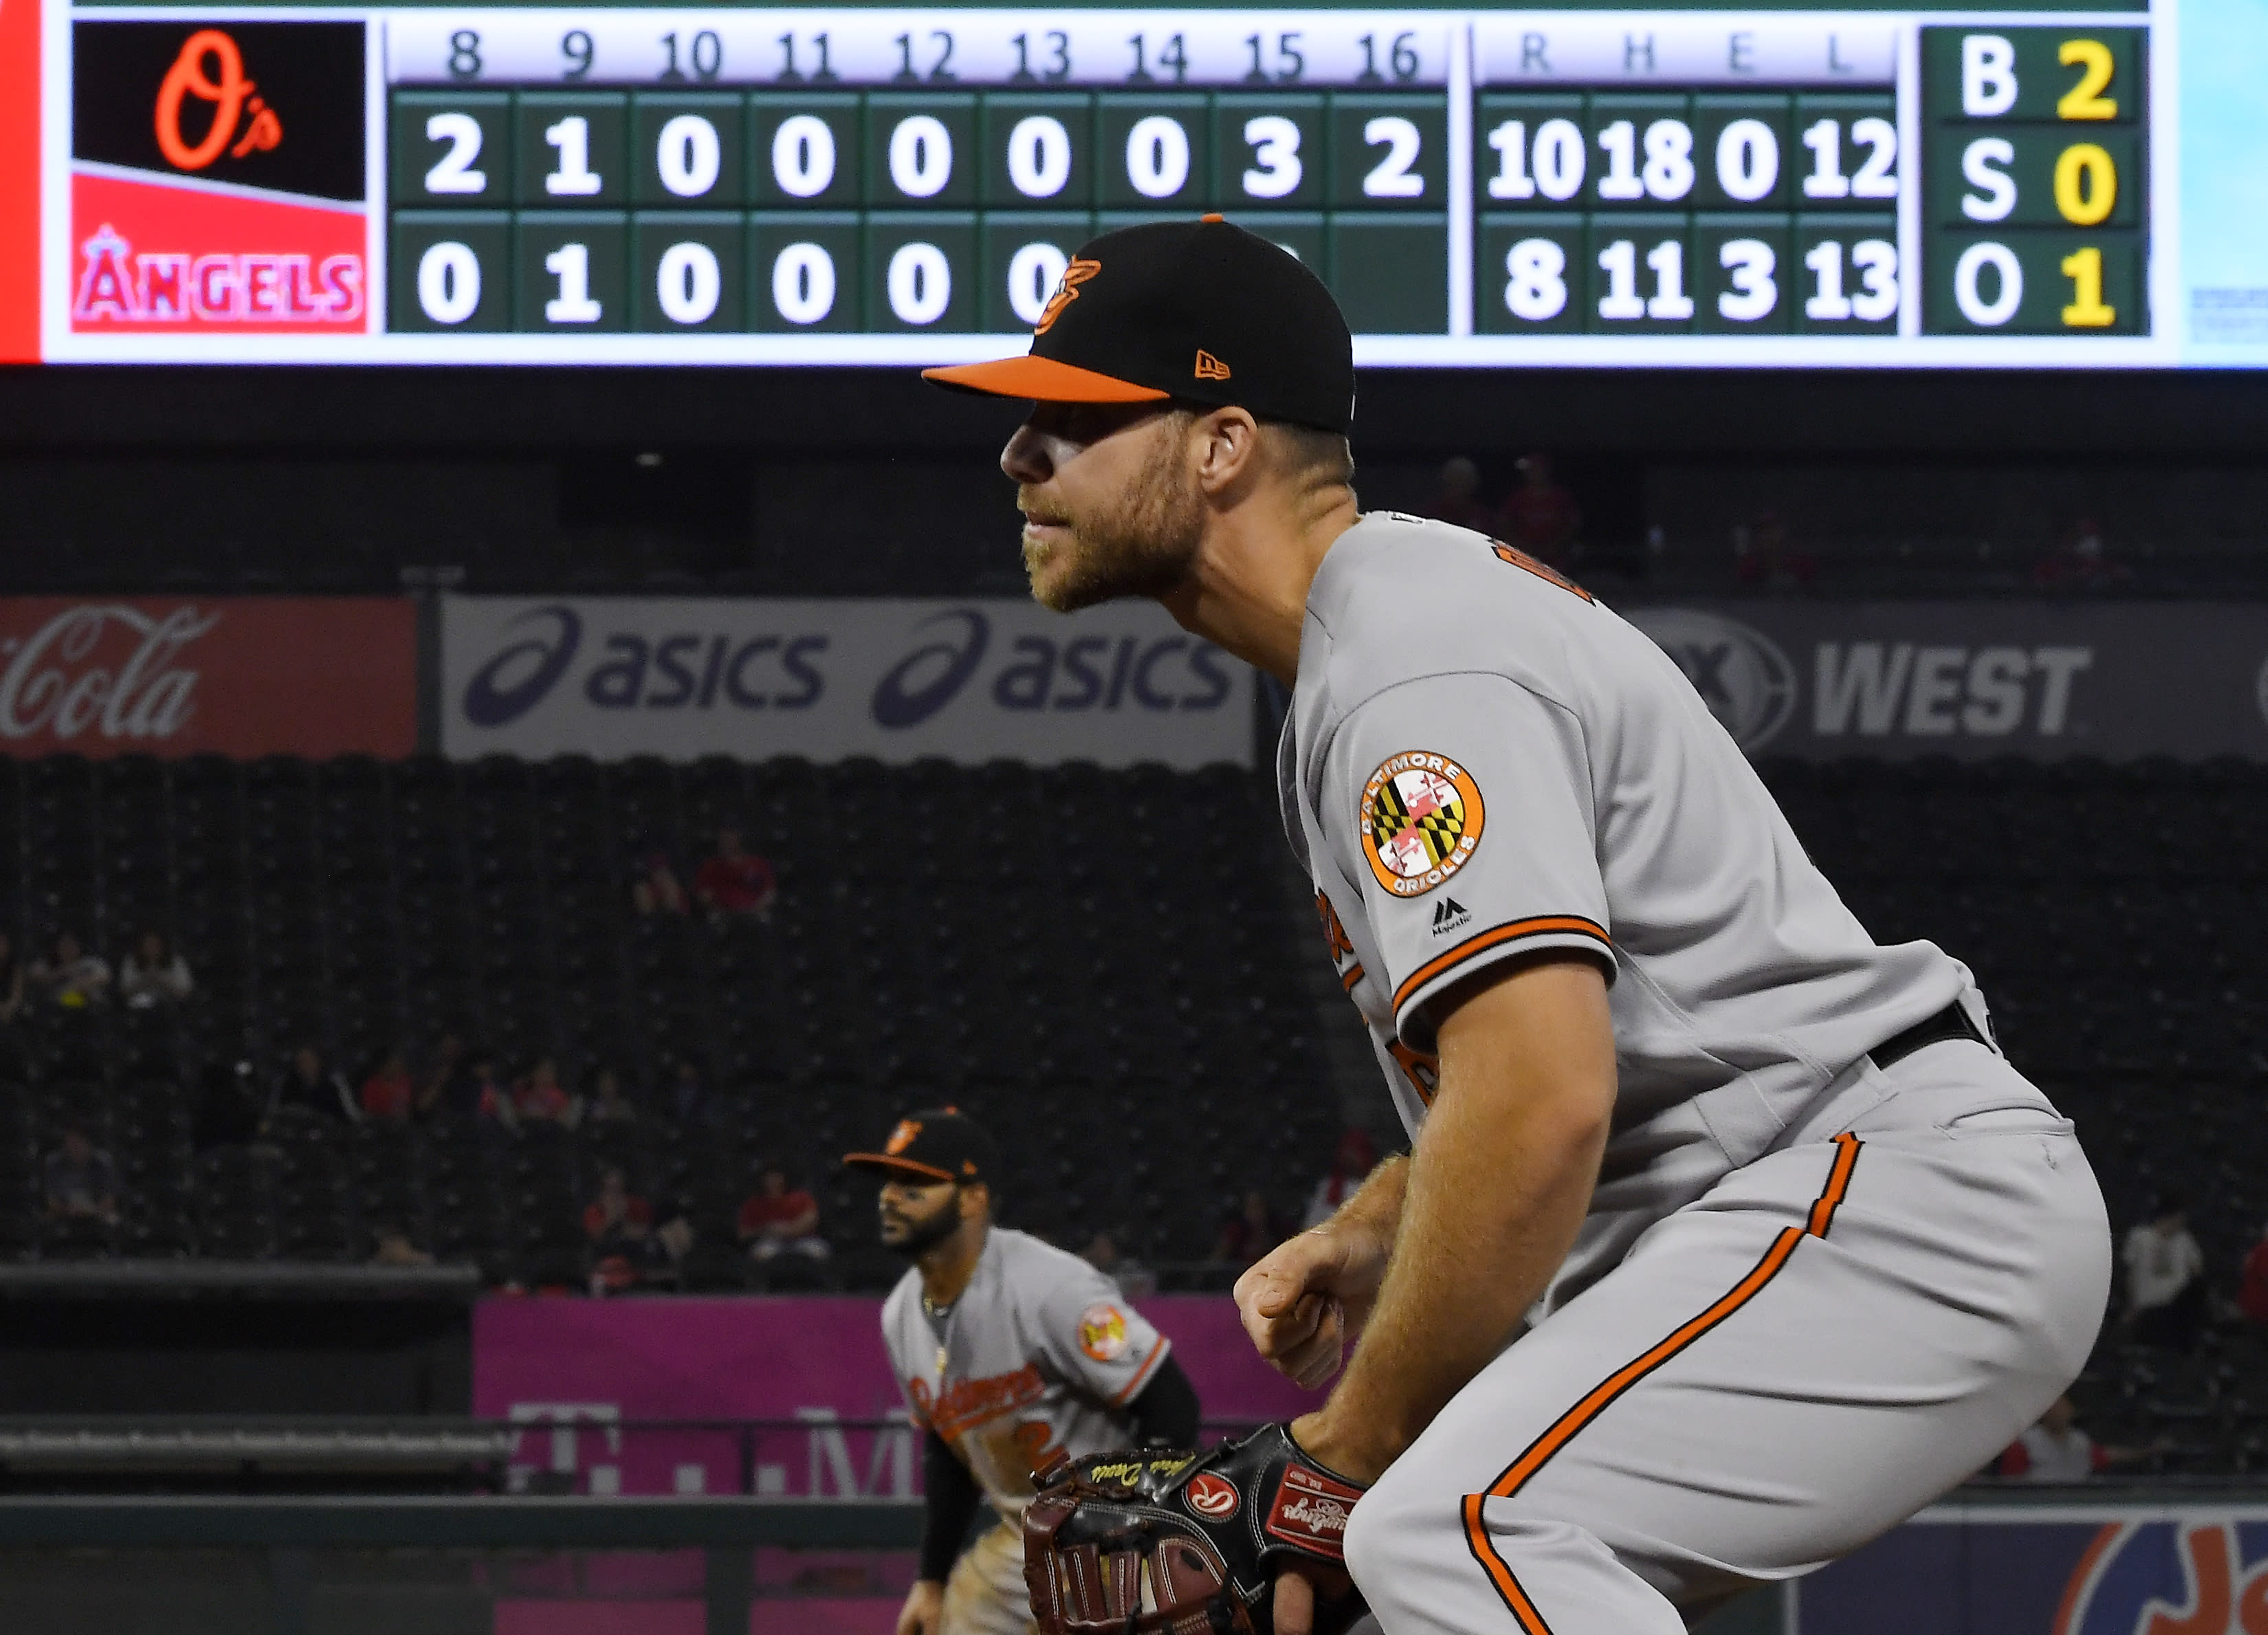 Angels face pitching issues as Orioles hit town